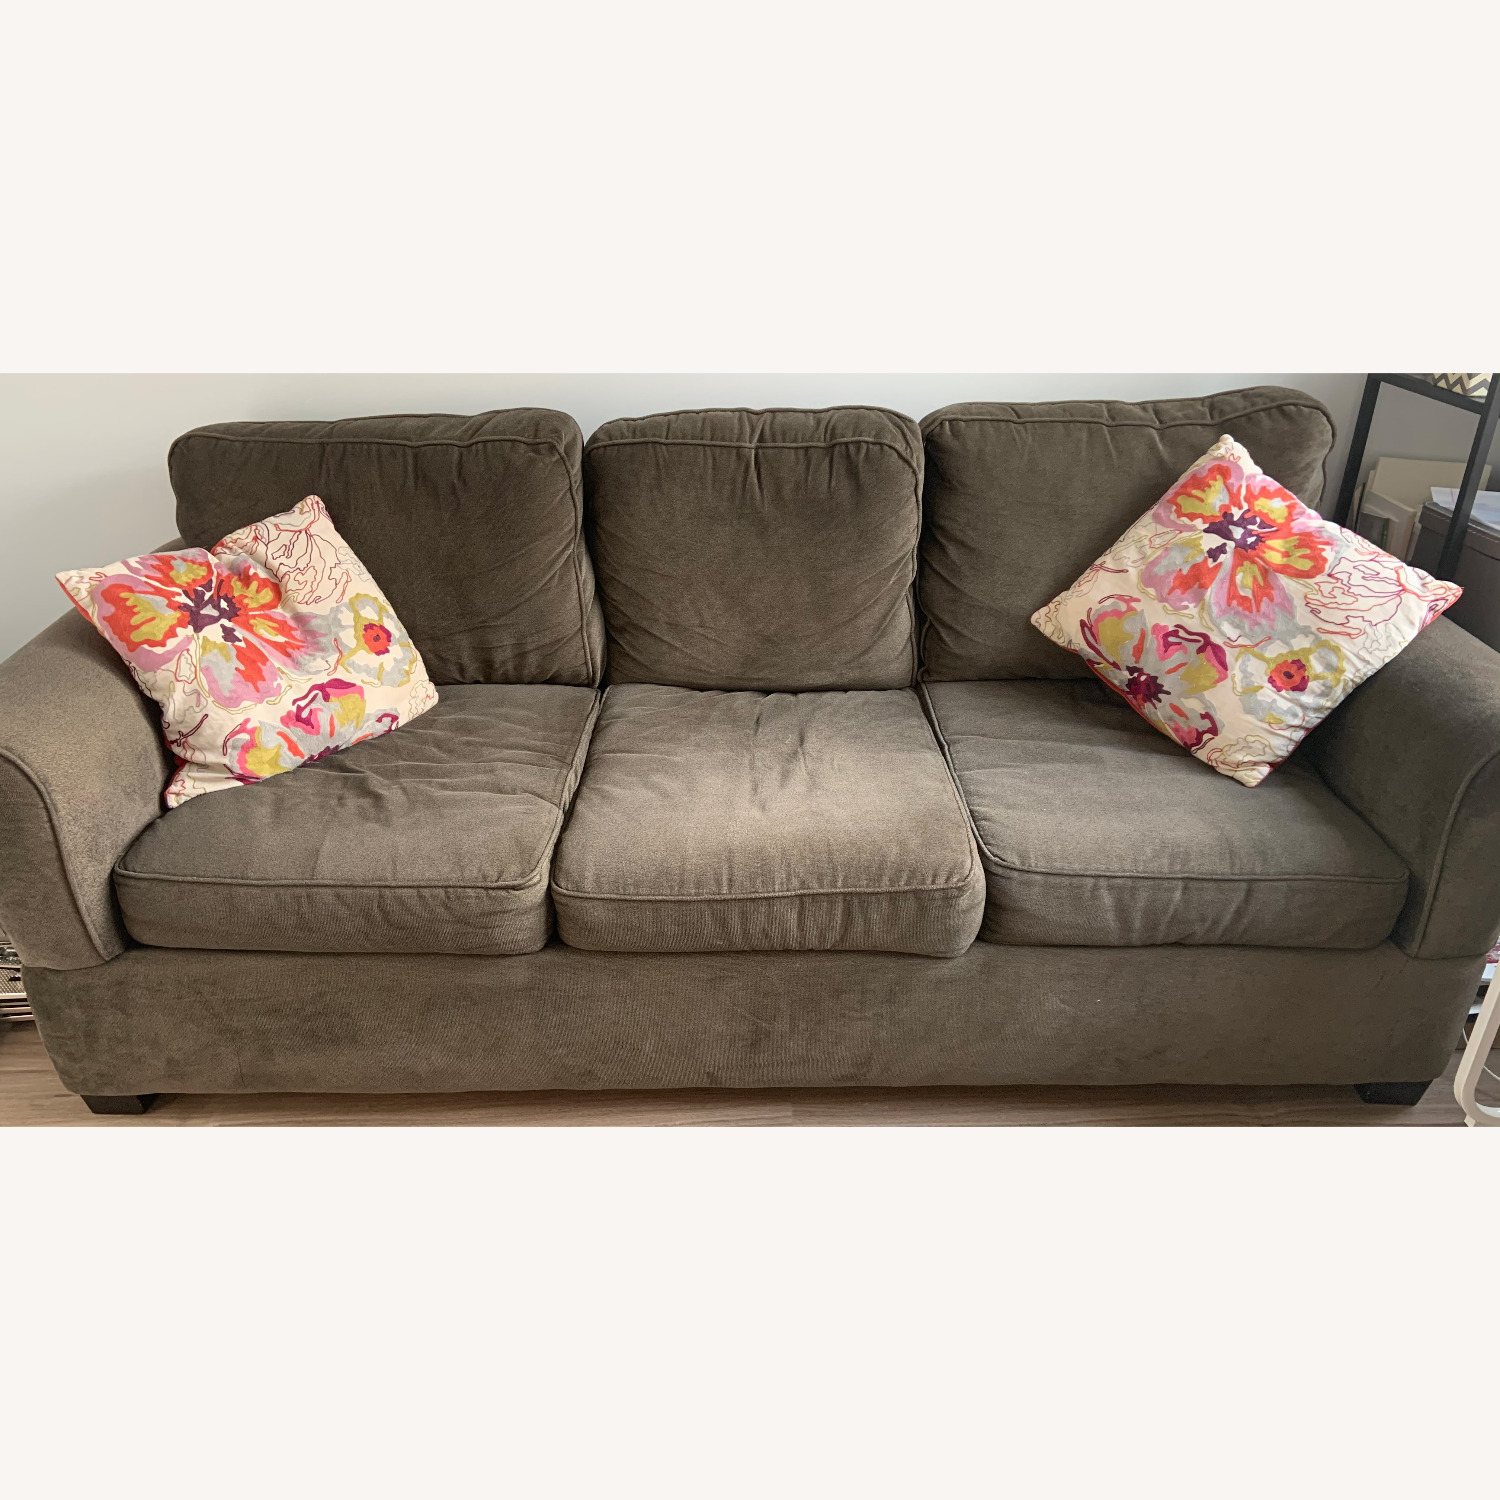 Jennifer Convertibles Comfy 3-Seater Couch - image-1